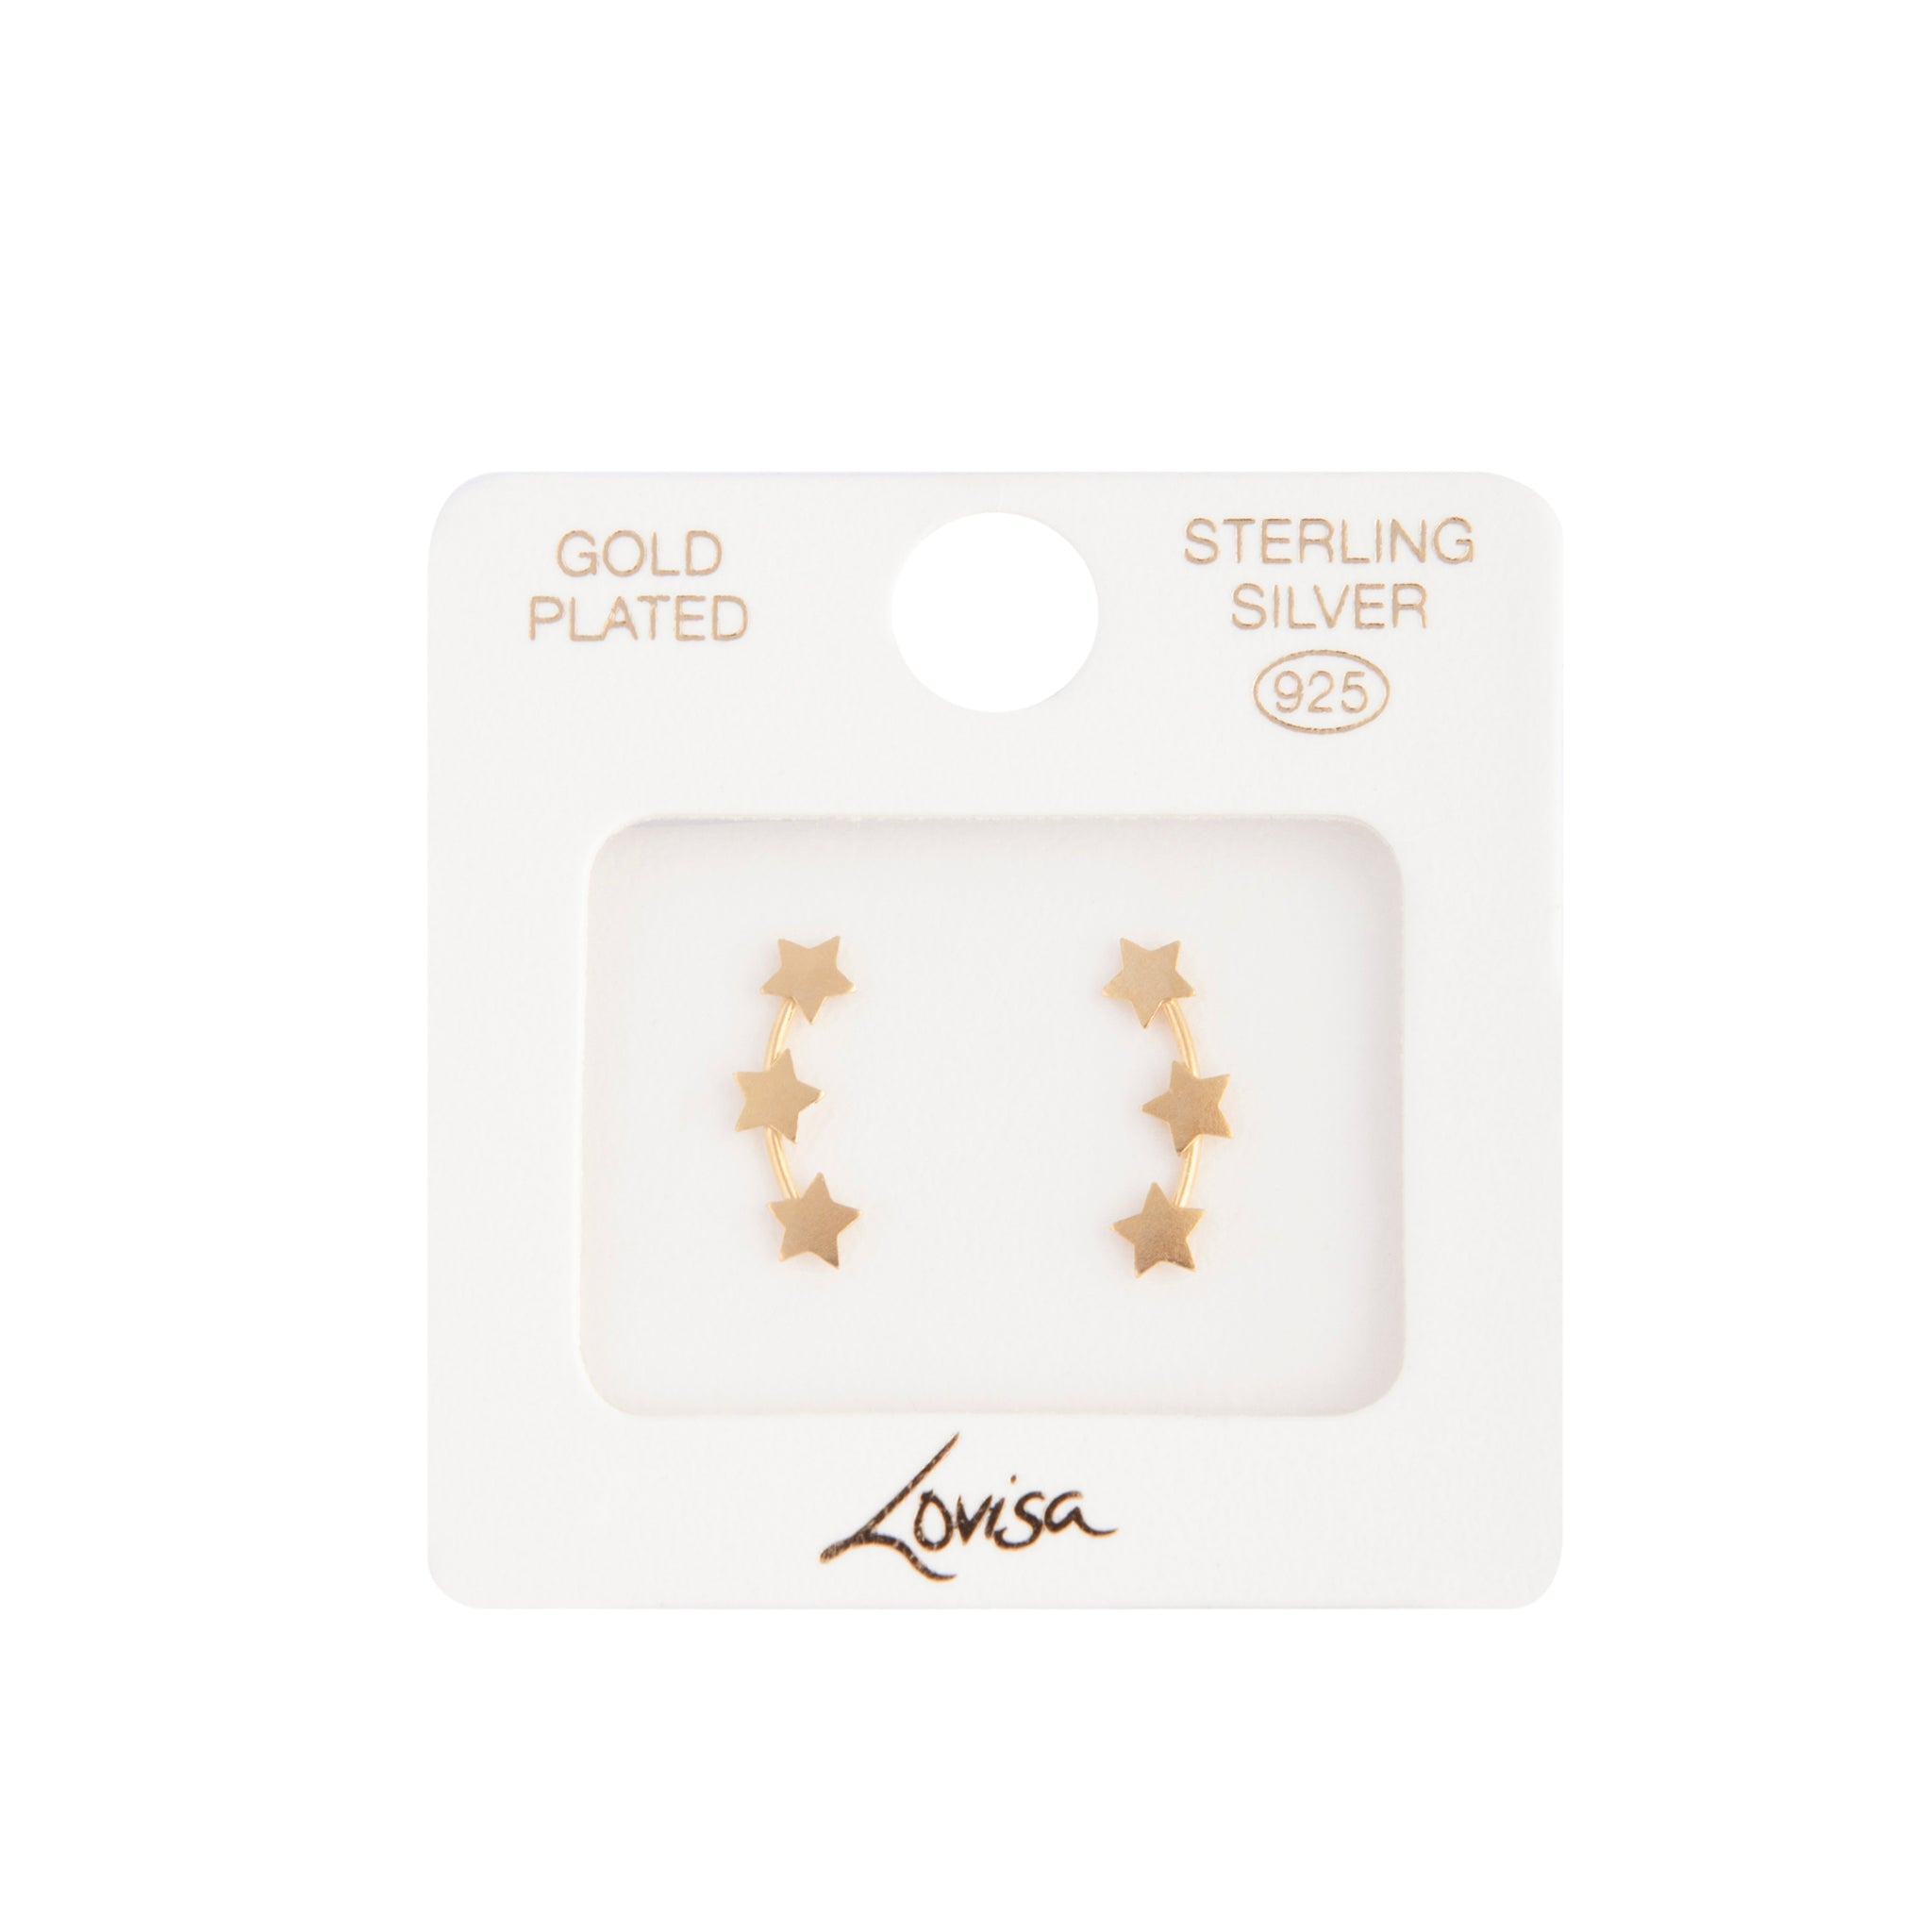 Gold Plated Sterling Silver Triple Star Stud Earring